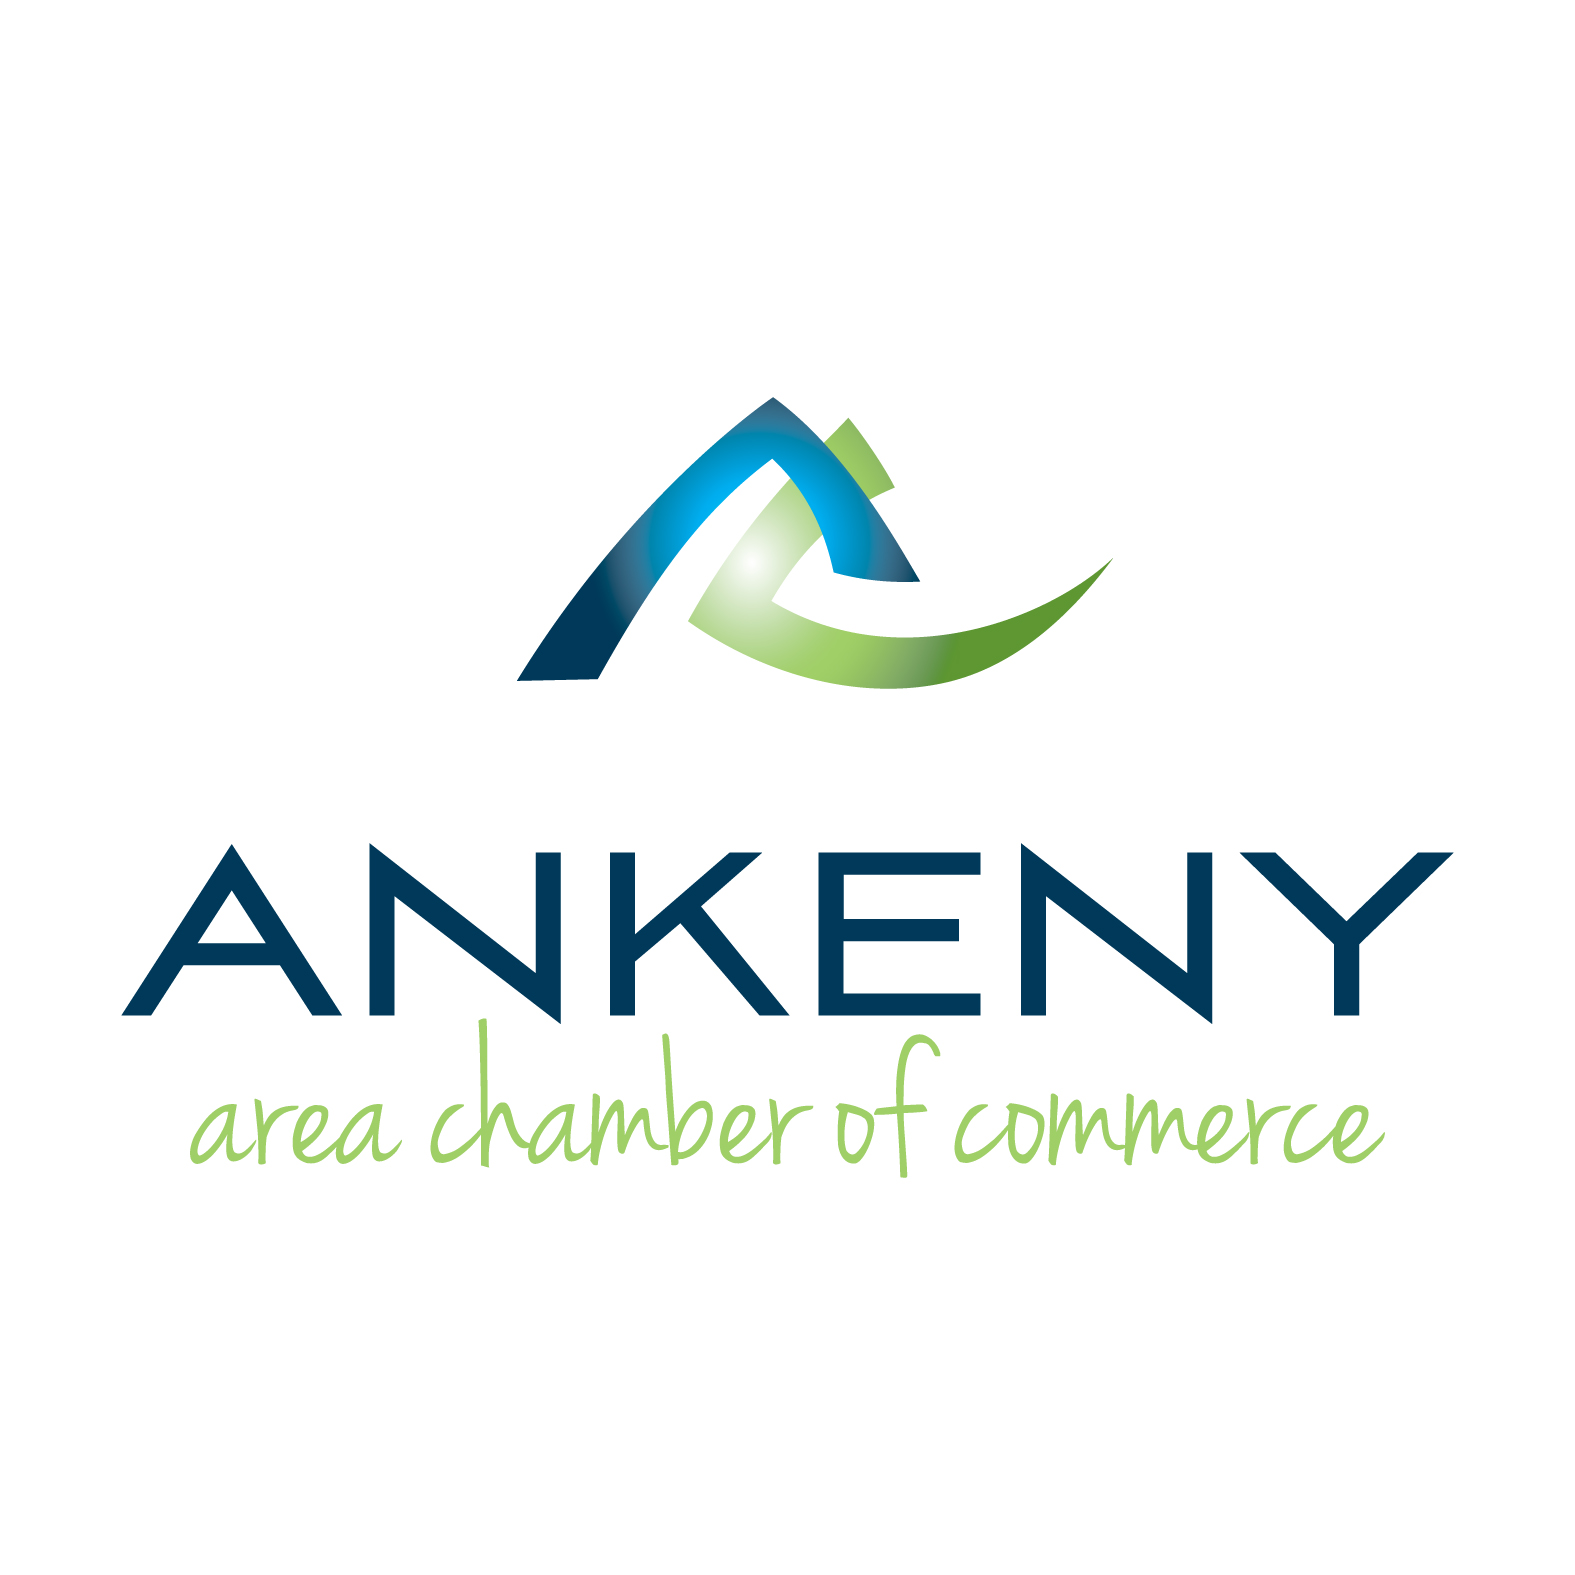 14969_ankeny_chamber_of_commerce_logo_ol.jpg